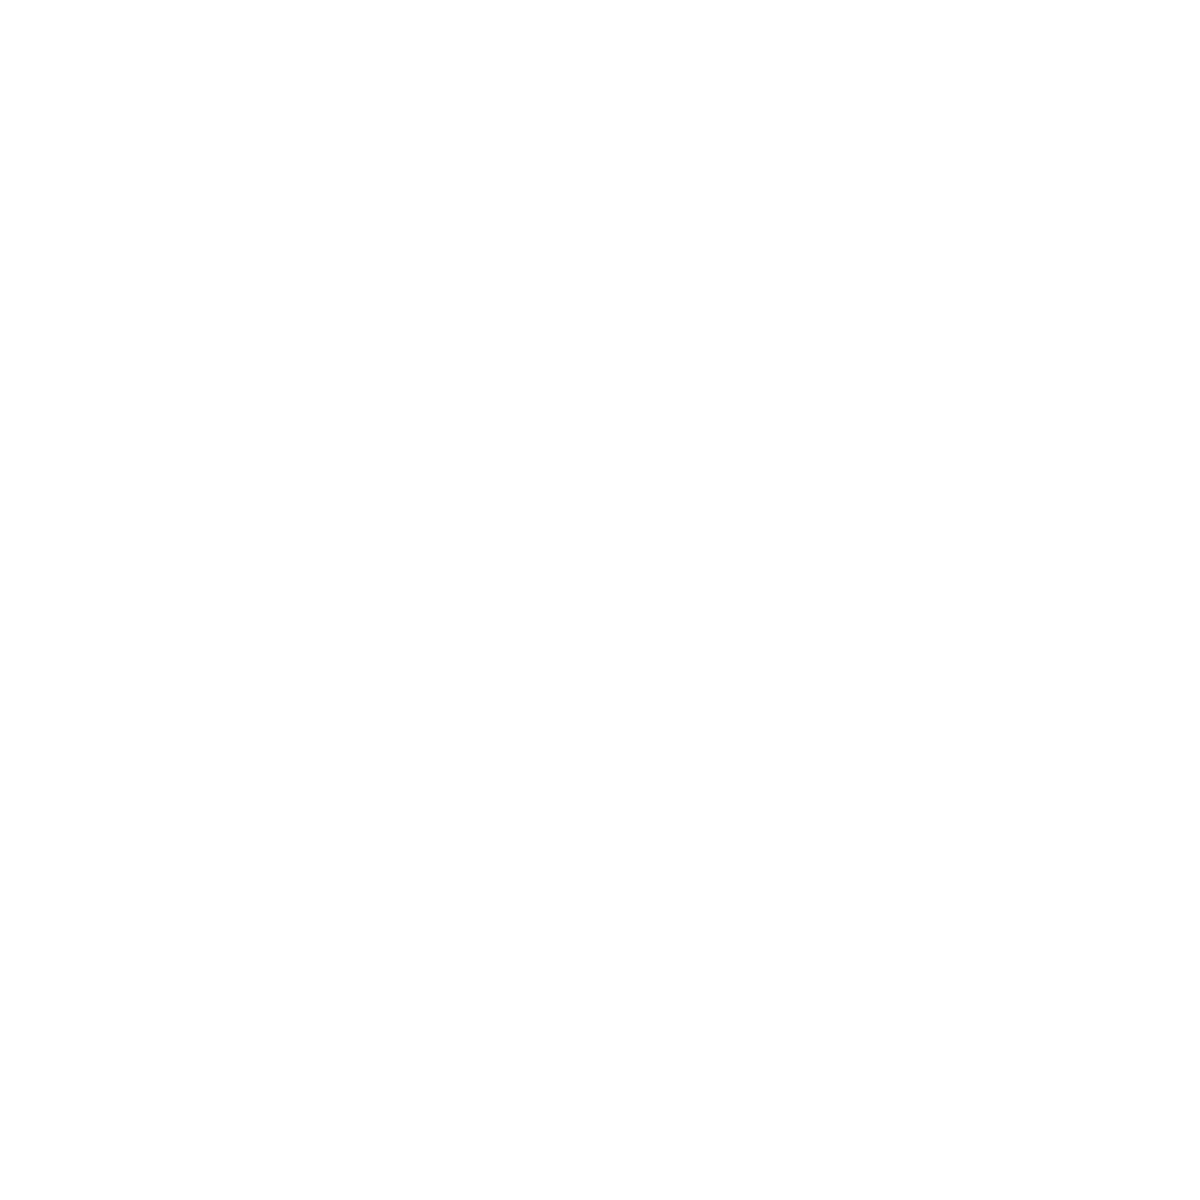 http://www.swanseadentistry.com/wp-content/uploads/2016/11/dental-crowns-white.png